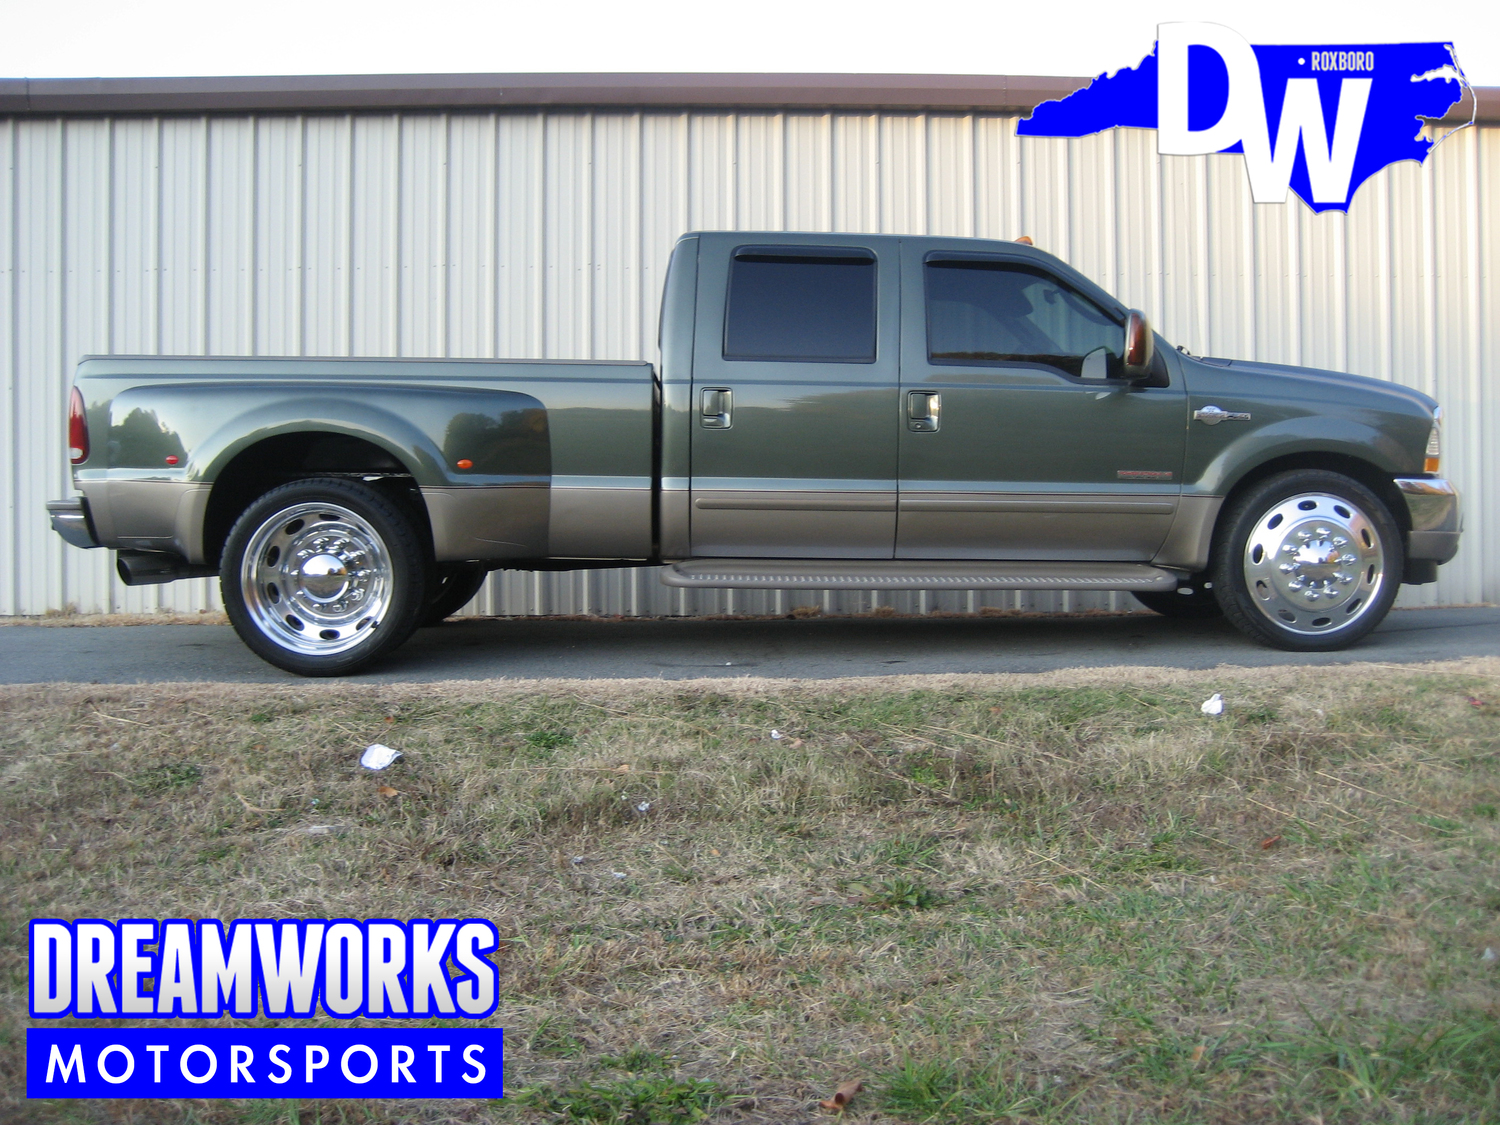 hight resolution of ford f350 semi wheels dreamworks motorsports 2 jpg